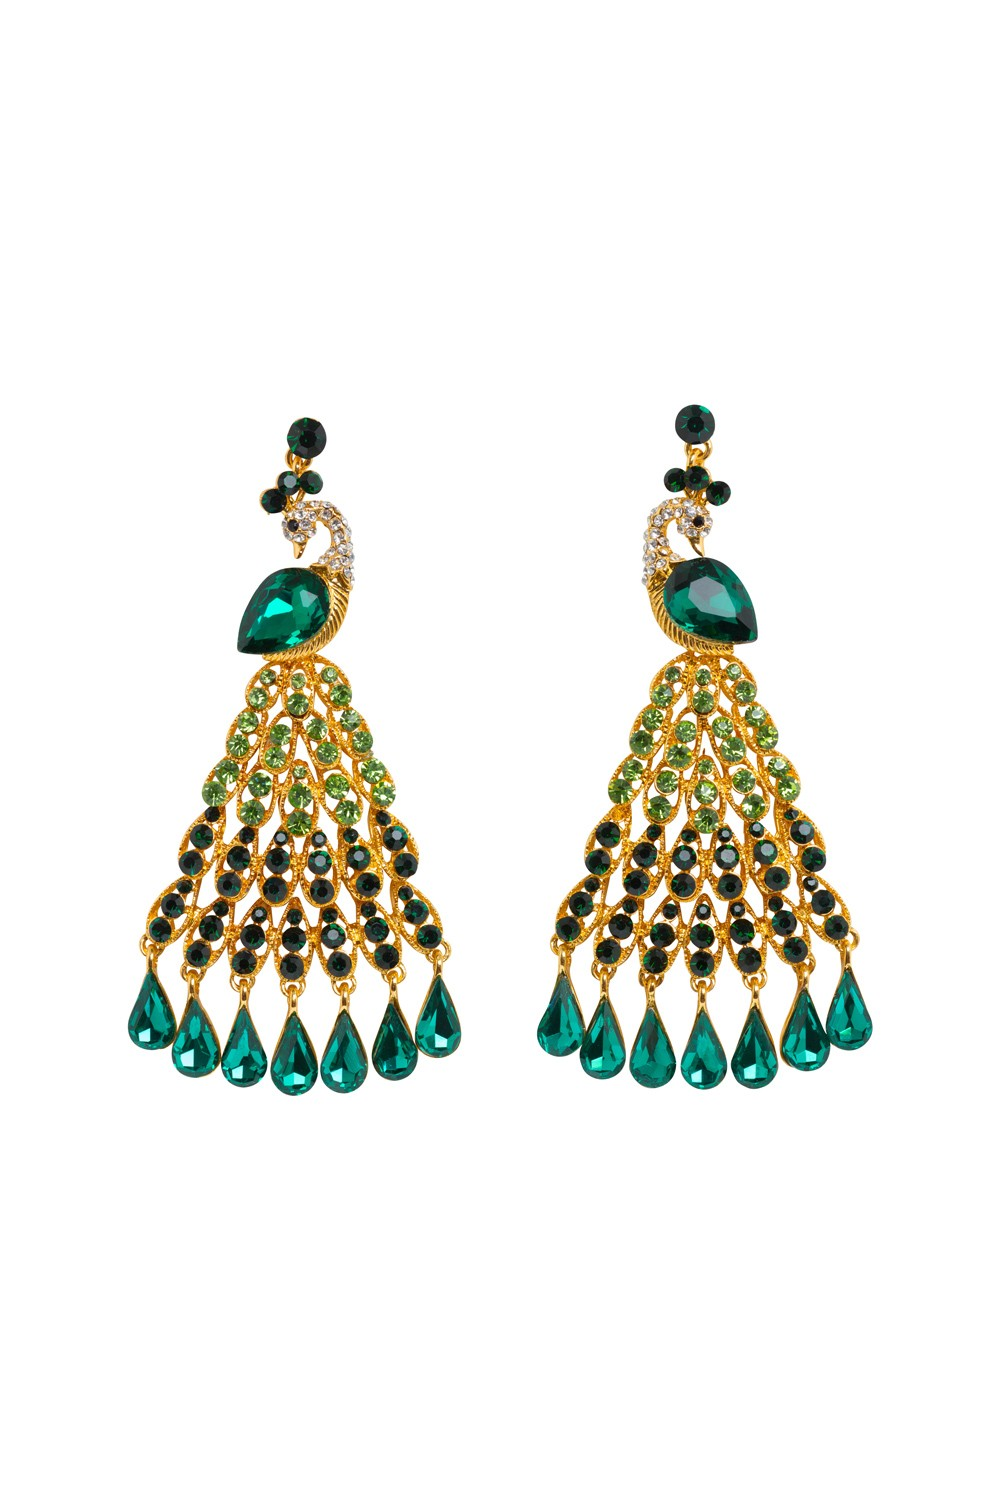 Peacock chandelier earrings mozeypictures Image collections